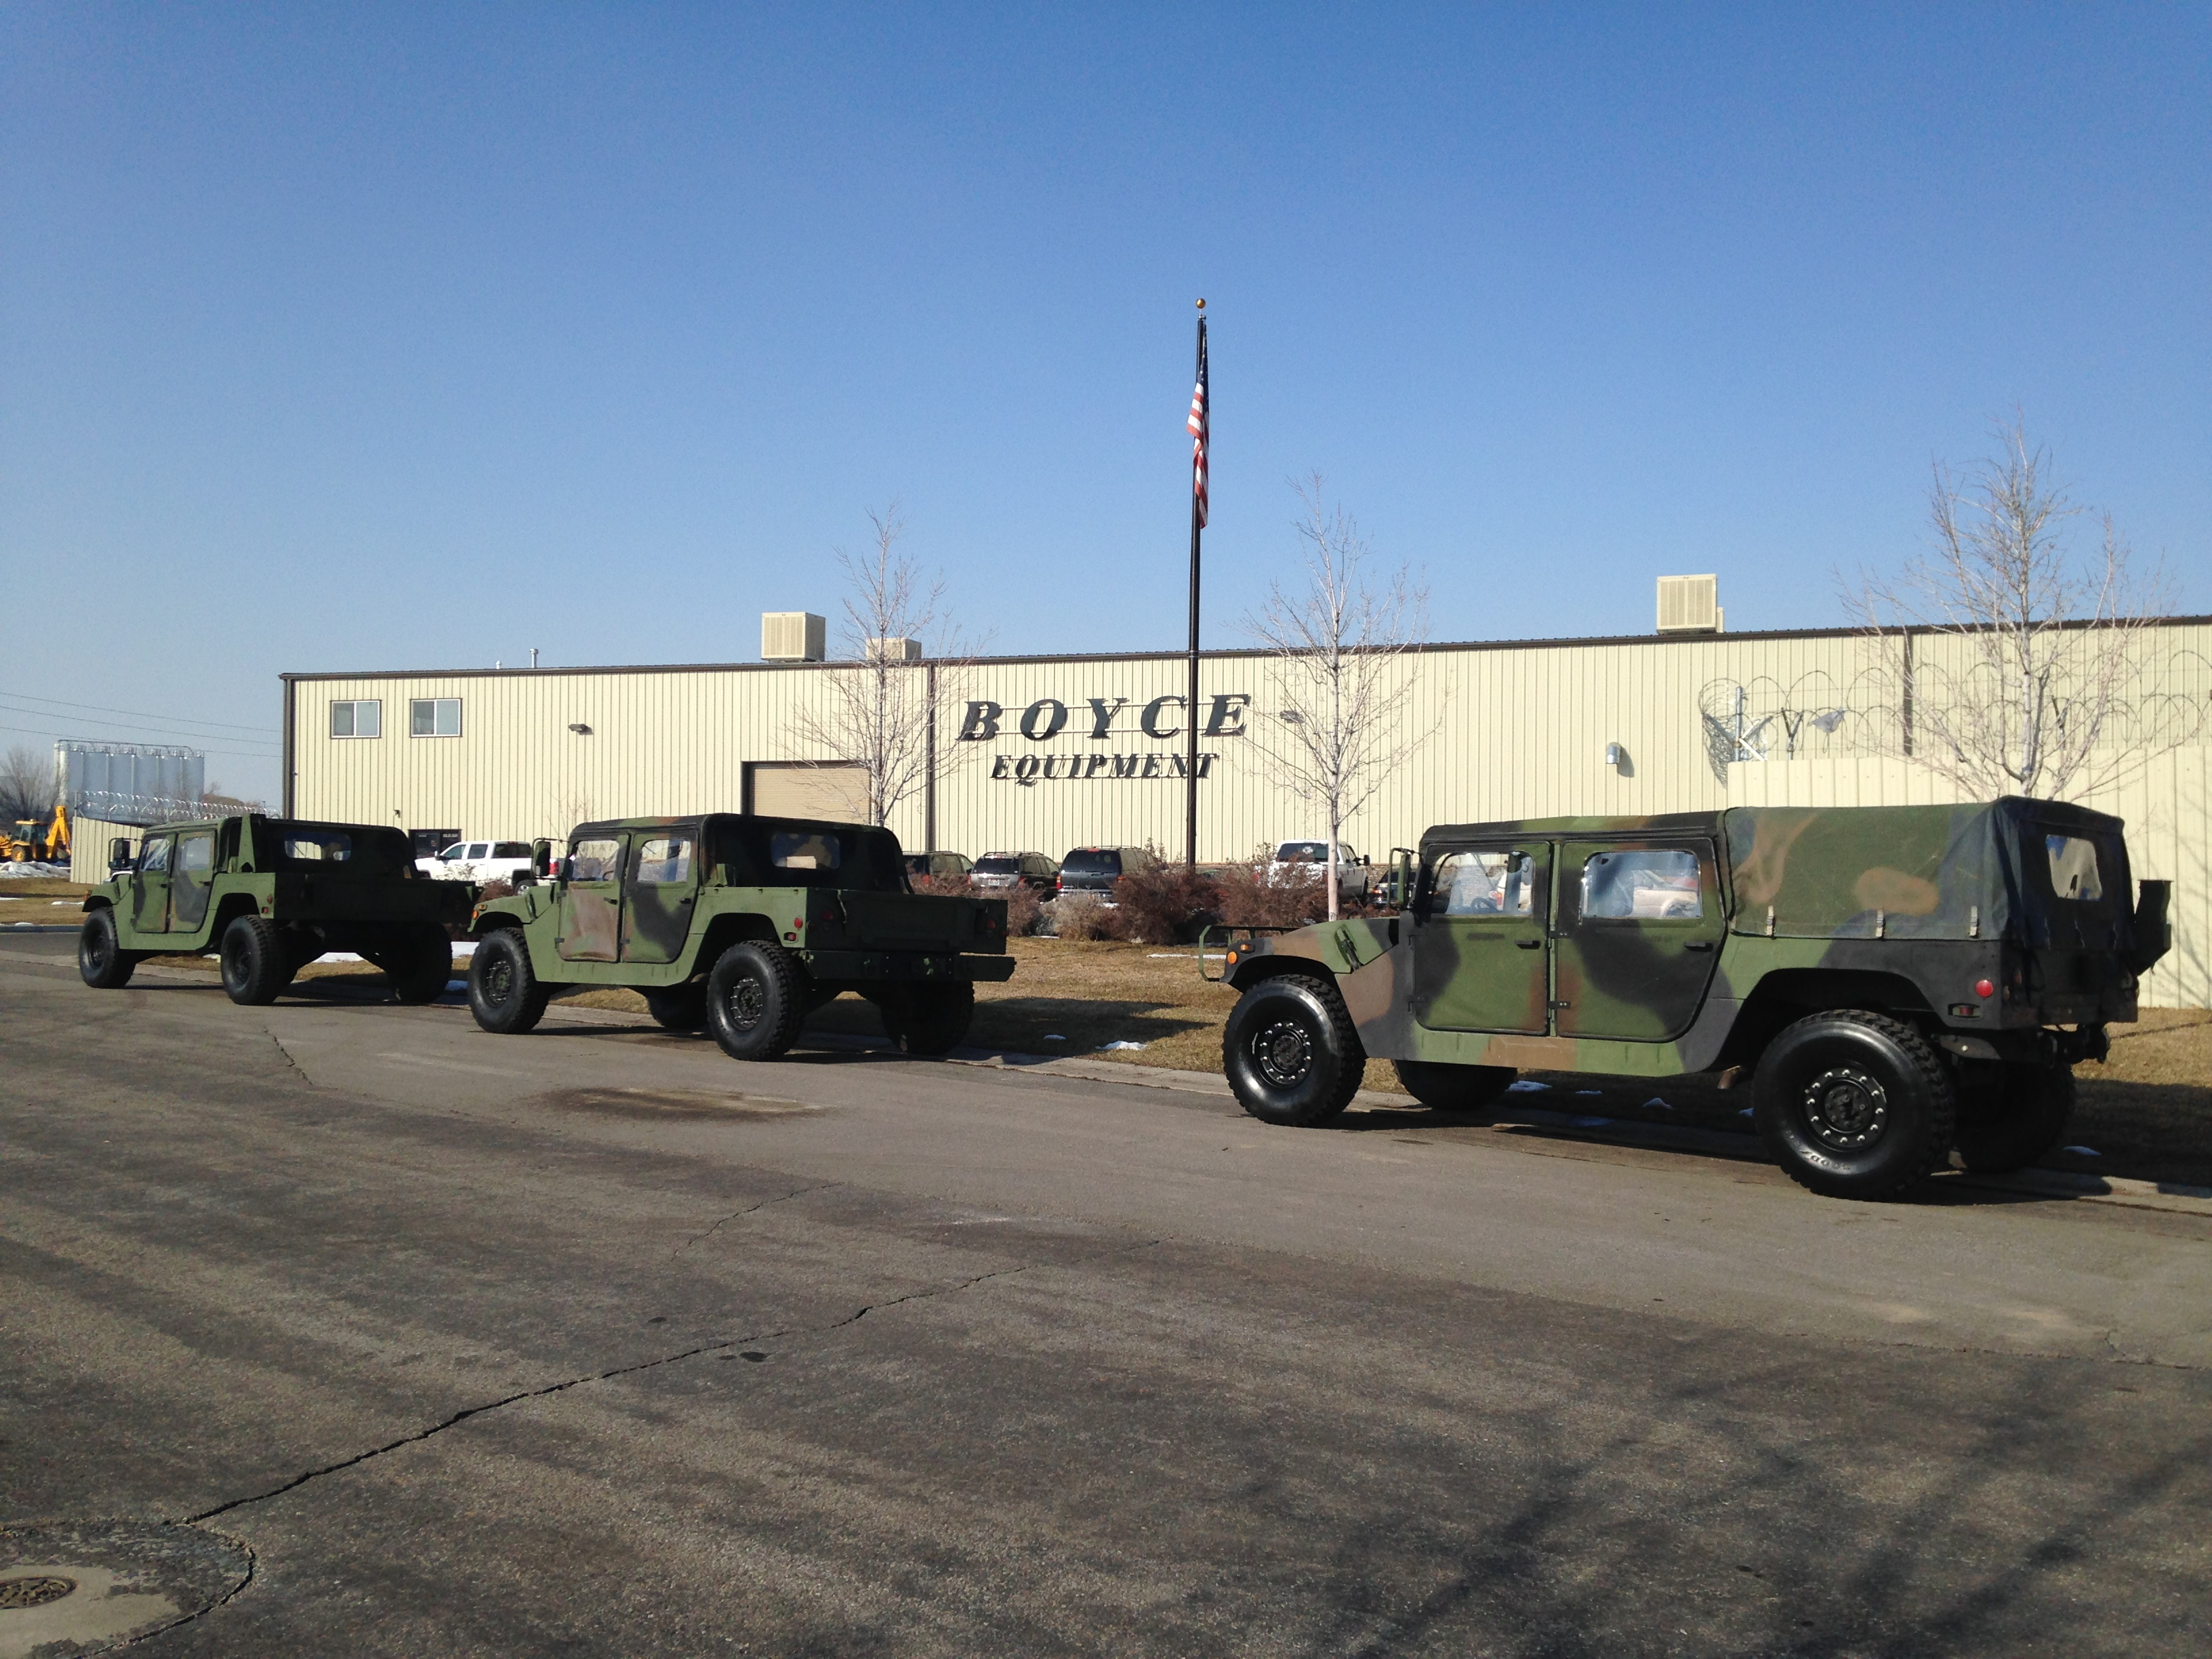 Military vehicles for sale. Military surplus vehicles, army trucks, tanks and parts, including used 4x4 and 6x6 military trucks, deuce and a half, military wreckers and crane trucks.